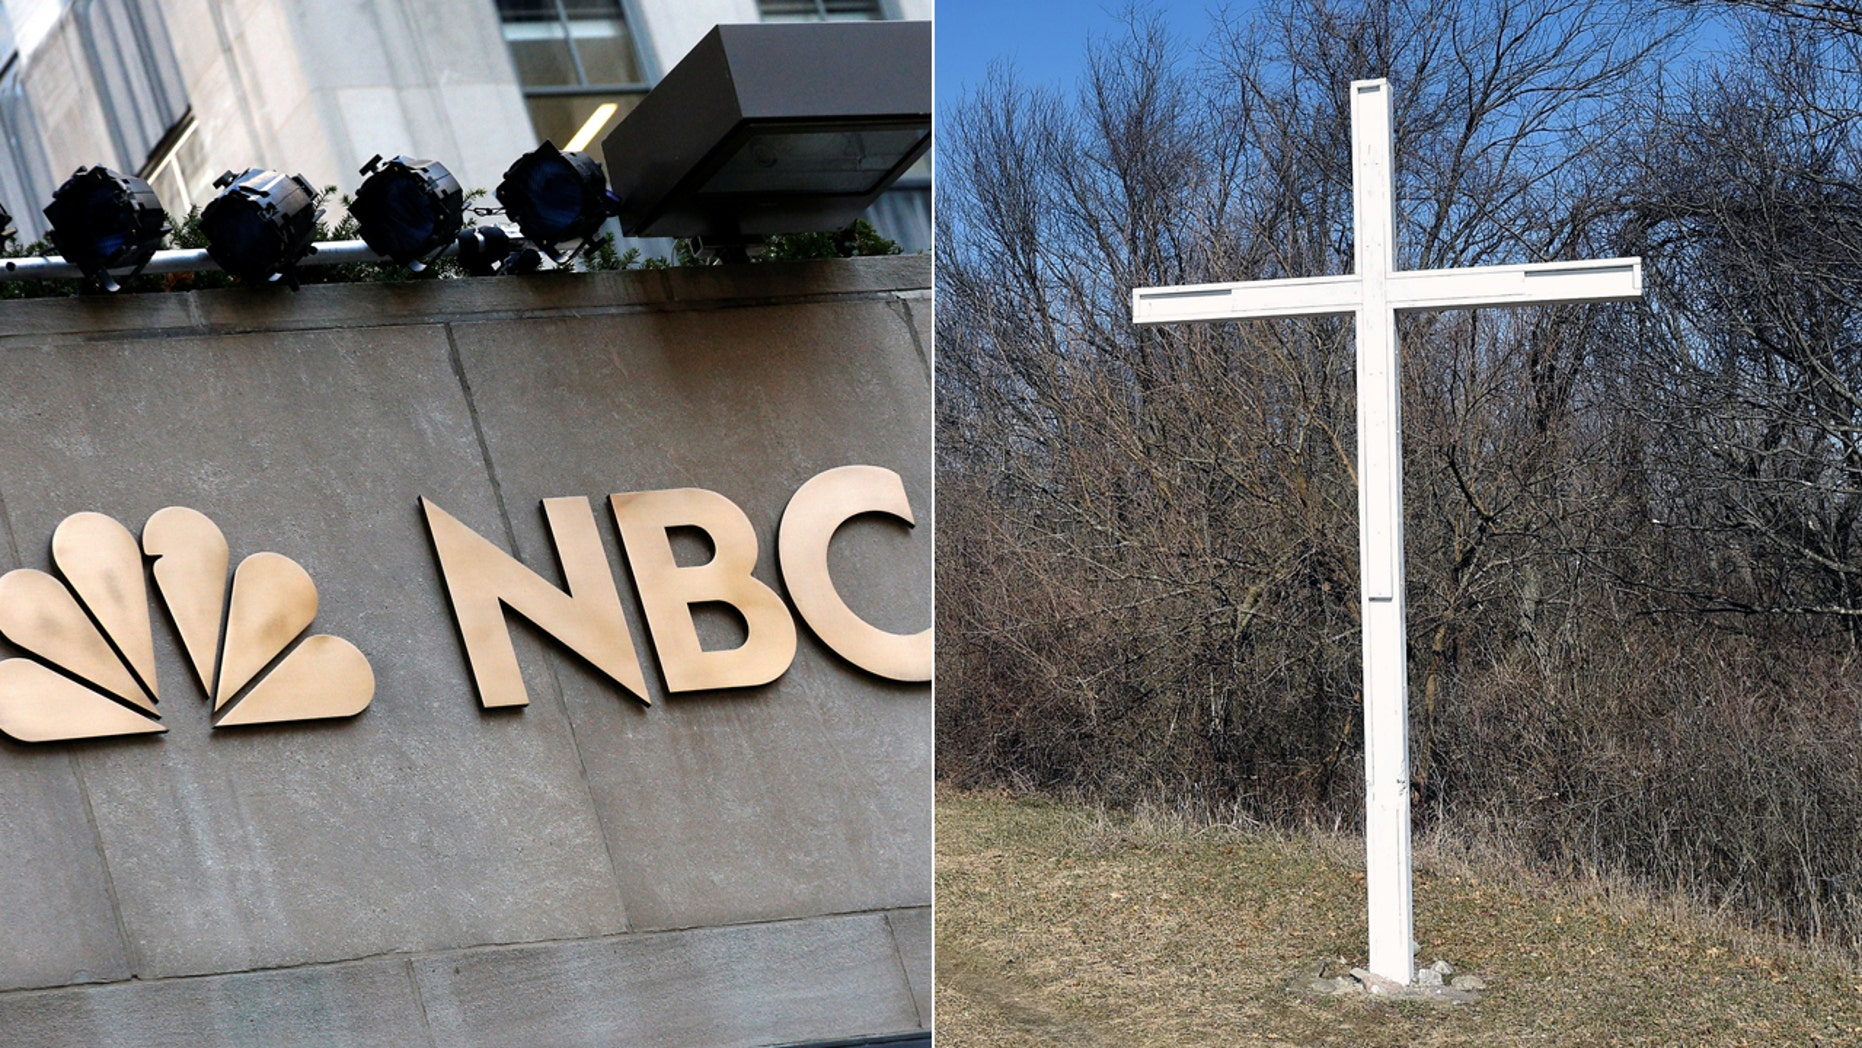 NBC News has declined to comment on the opinion piece.